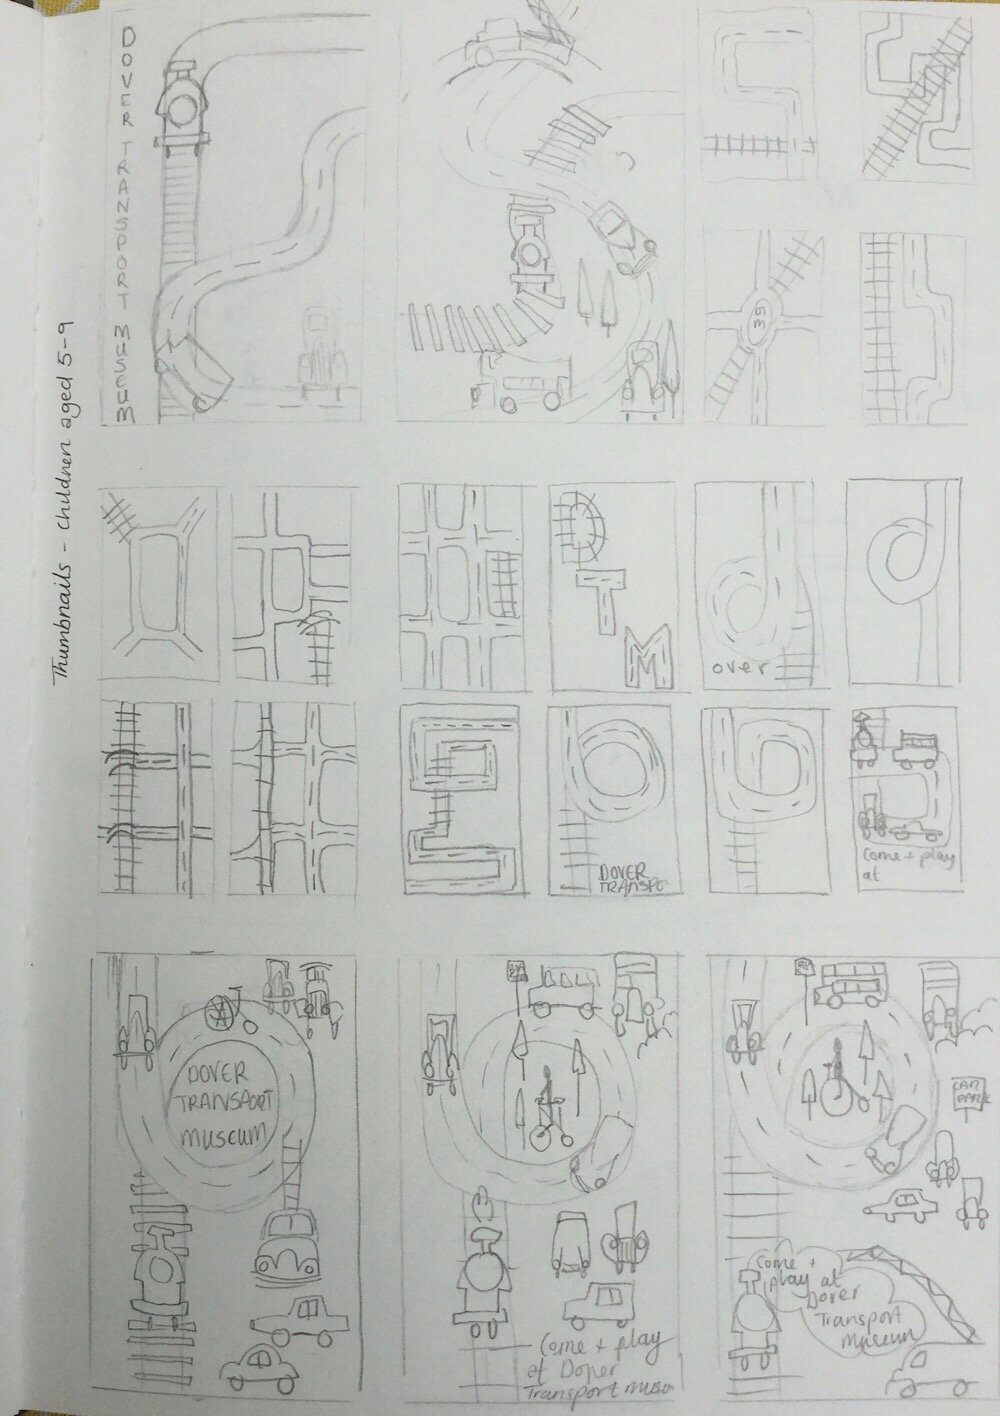 Thumbnails for initial ideas